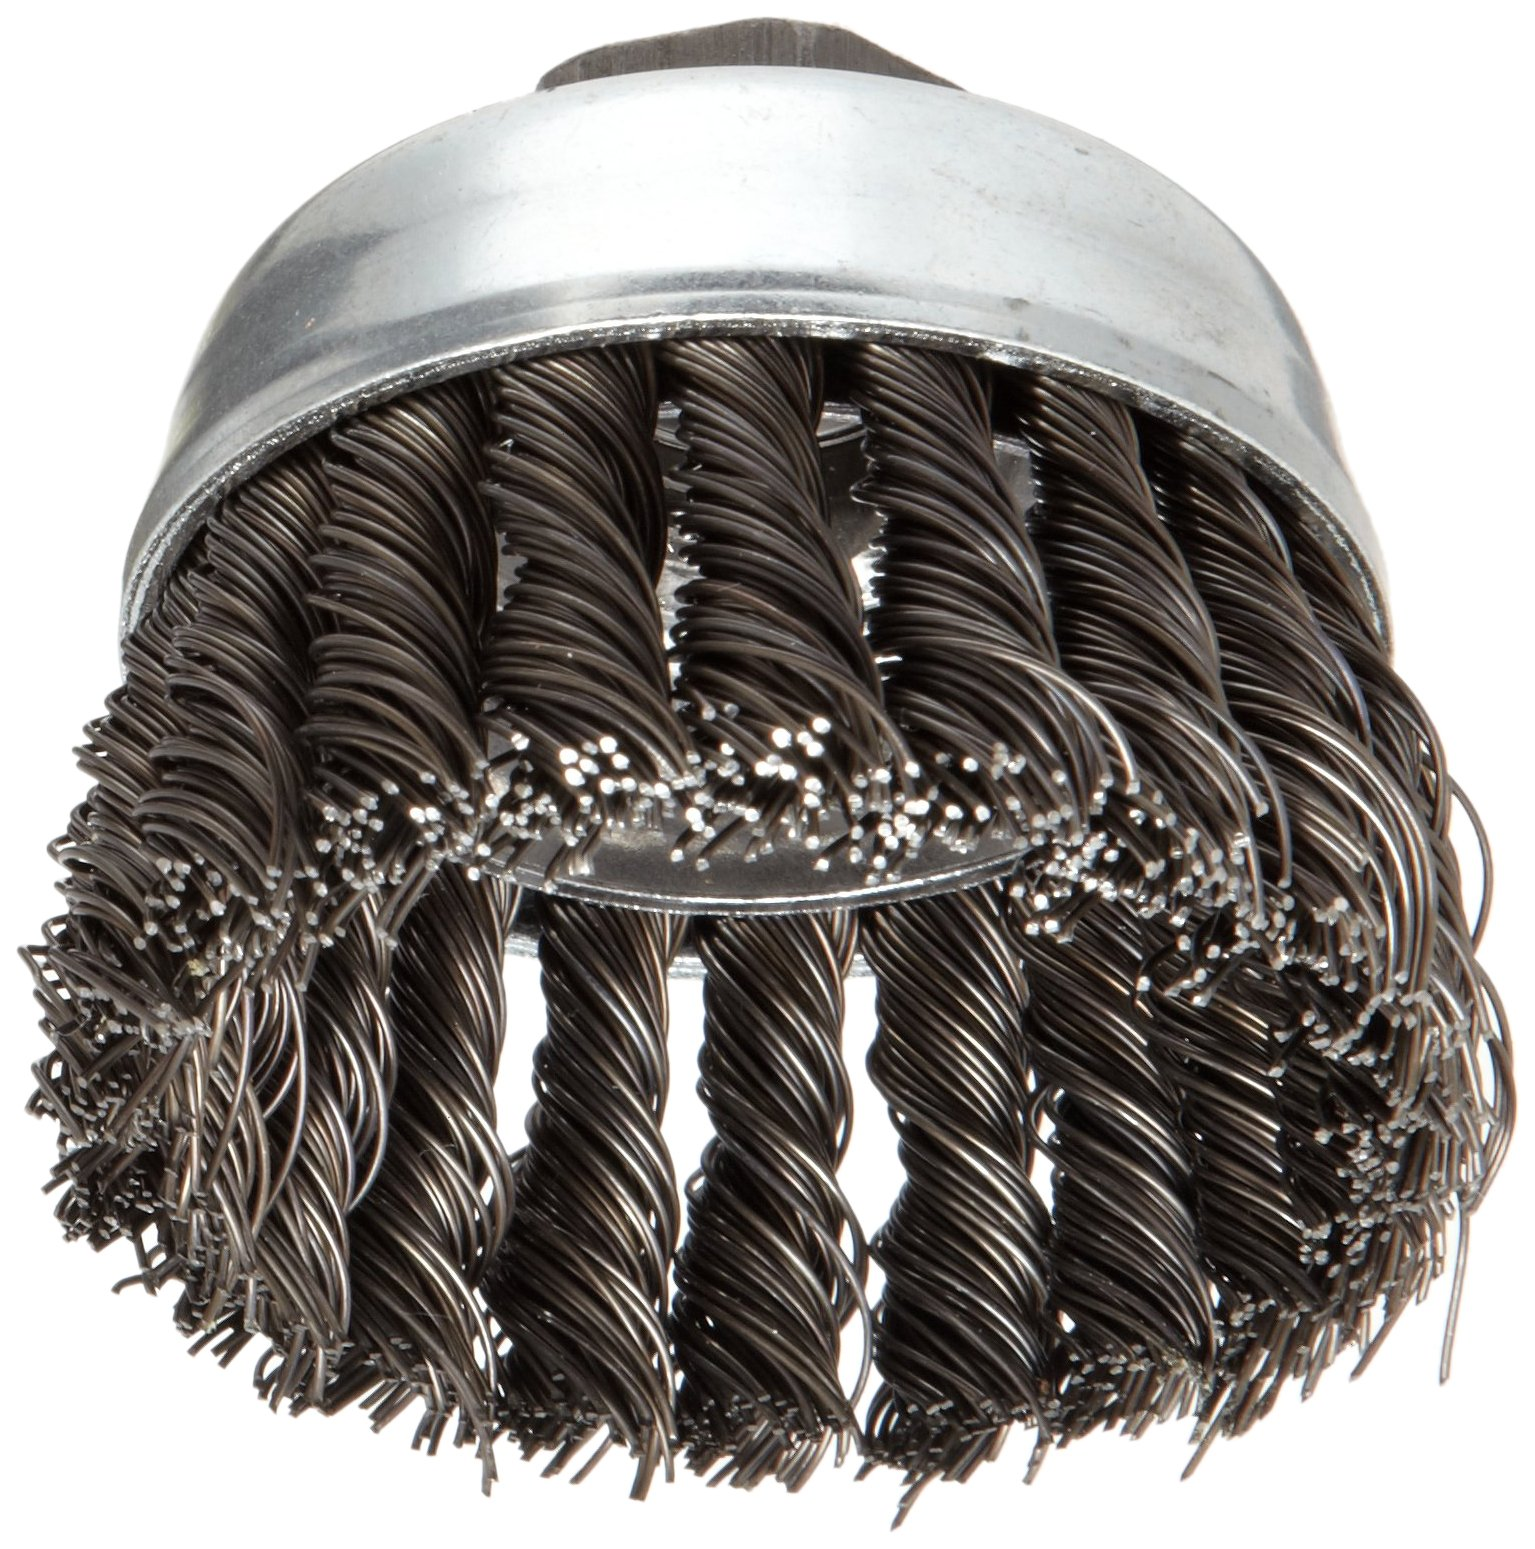 Weiler Vortex Pro Wire Cup Brush, Threaded Hole, Carbon Steel, Partial Twist Knotted, 3'' Diameter, 0.02'' Wire Diameter, 5/8''-11 Arbor, 14000 rpm (Pack of 1)